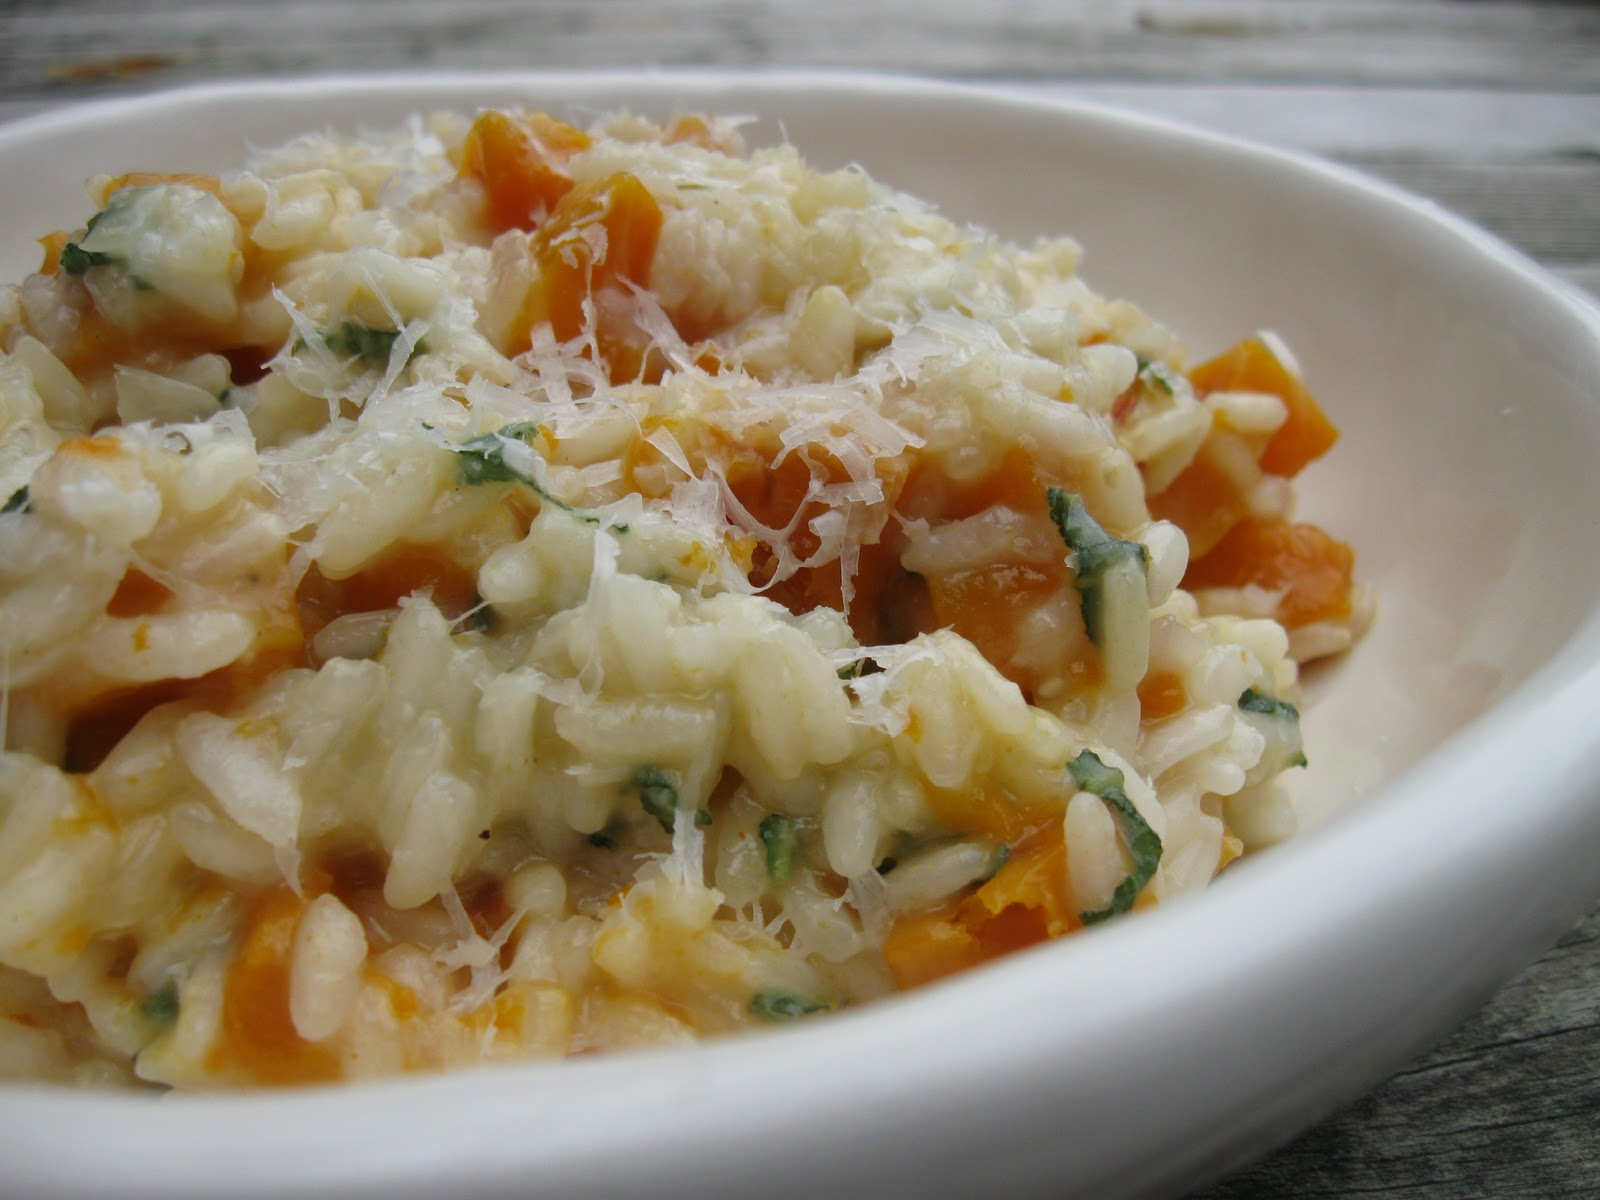 Tate's Kitchen: butternut squash risotto